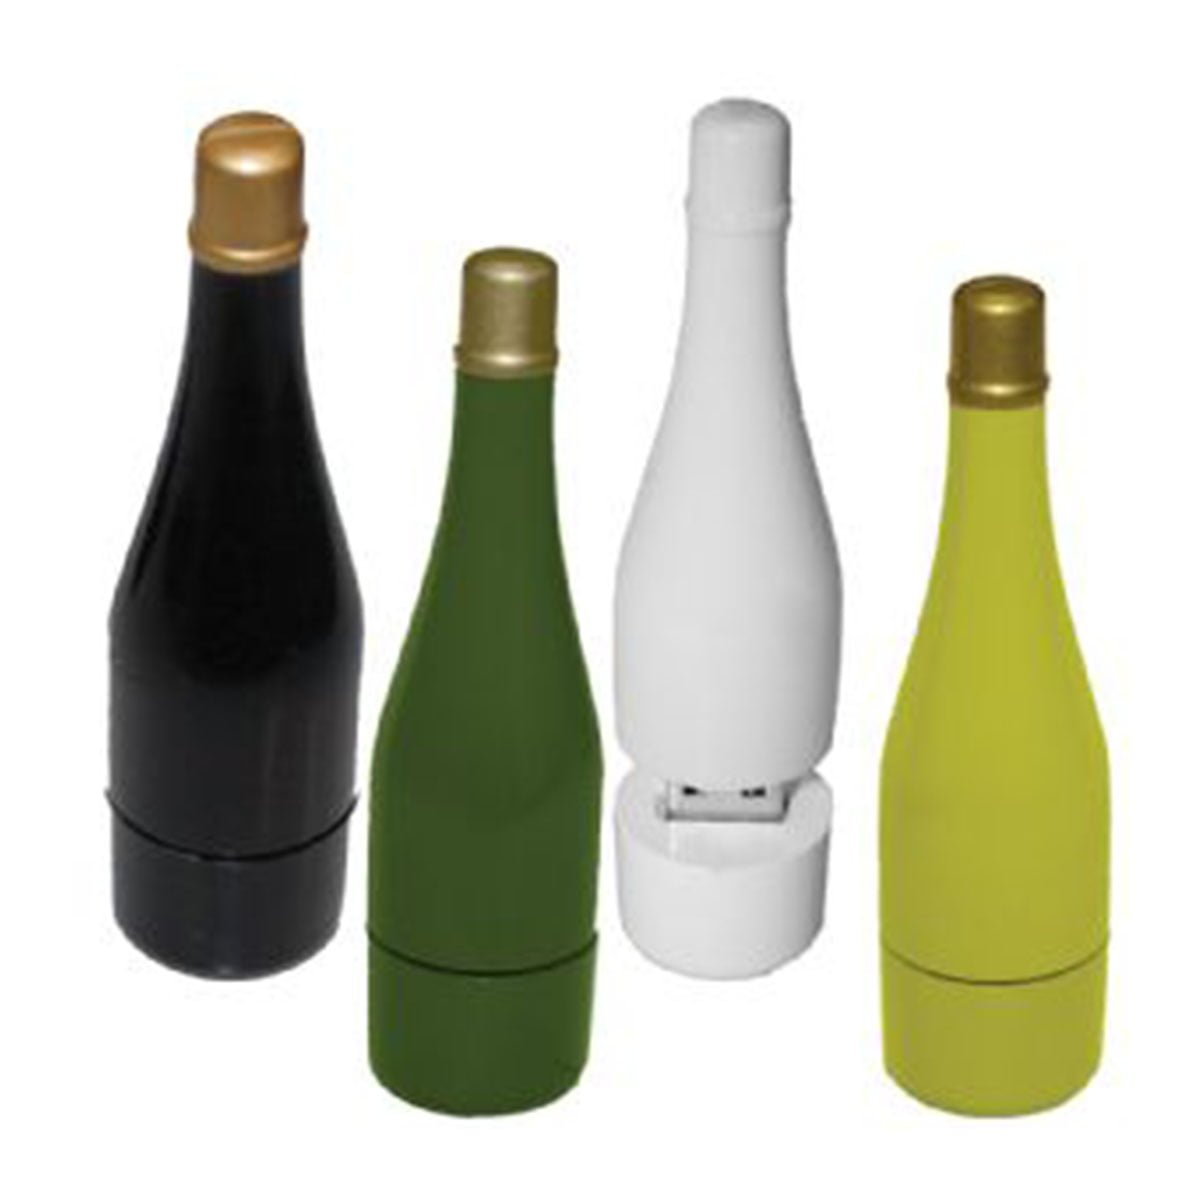 Wine Bottle (ABS) Flash Drive-You can change up to 2 of the base PVC colours and print your logo in 1-2 colours in 1 position.